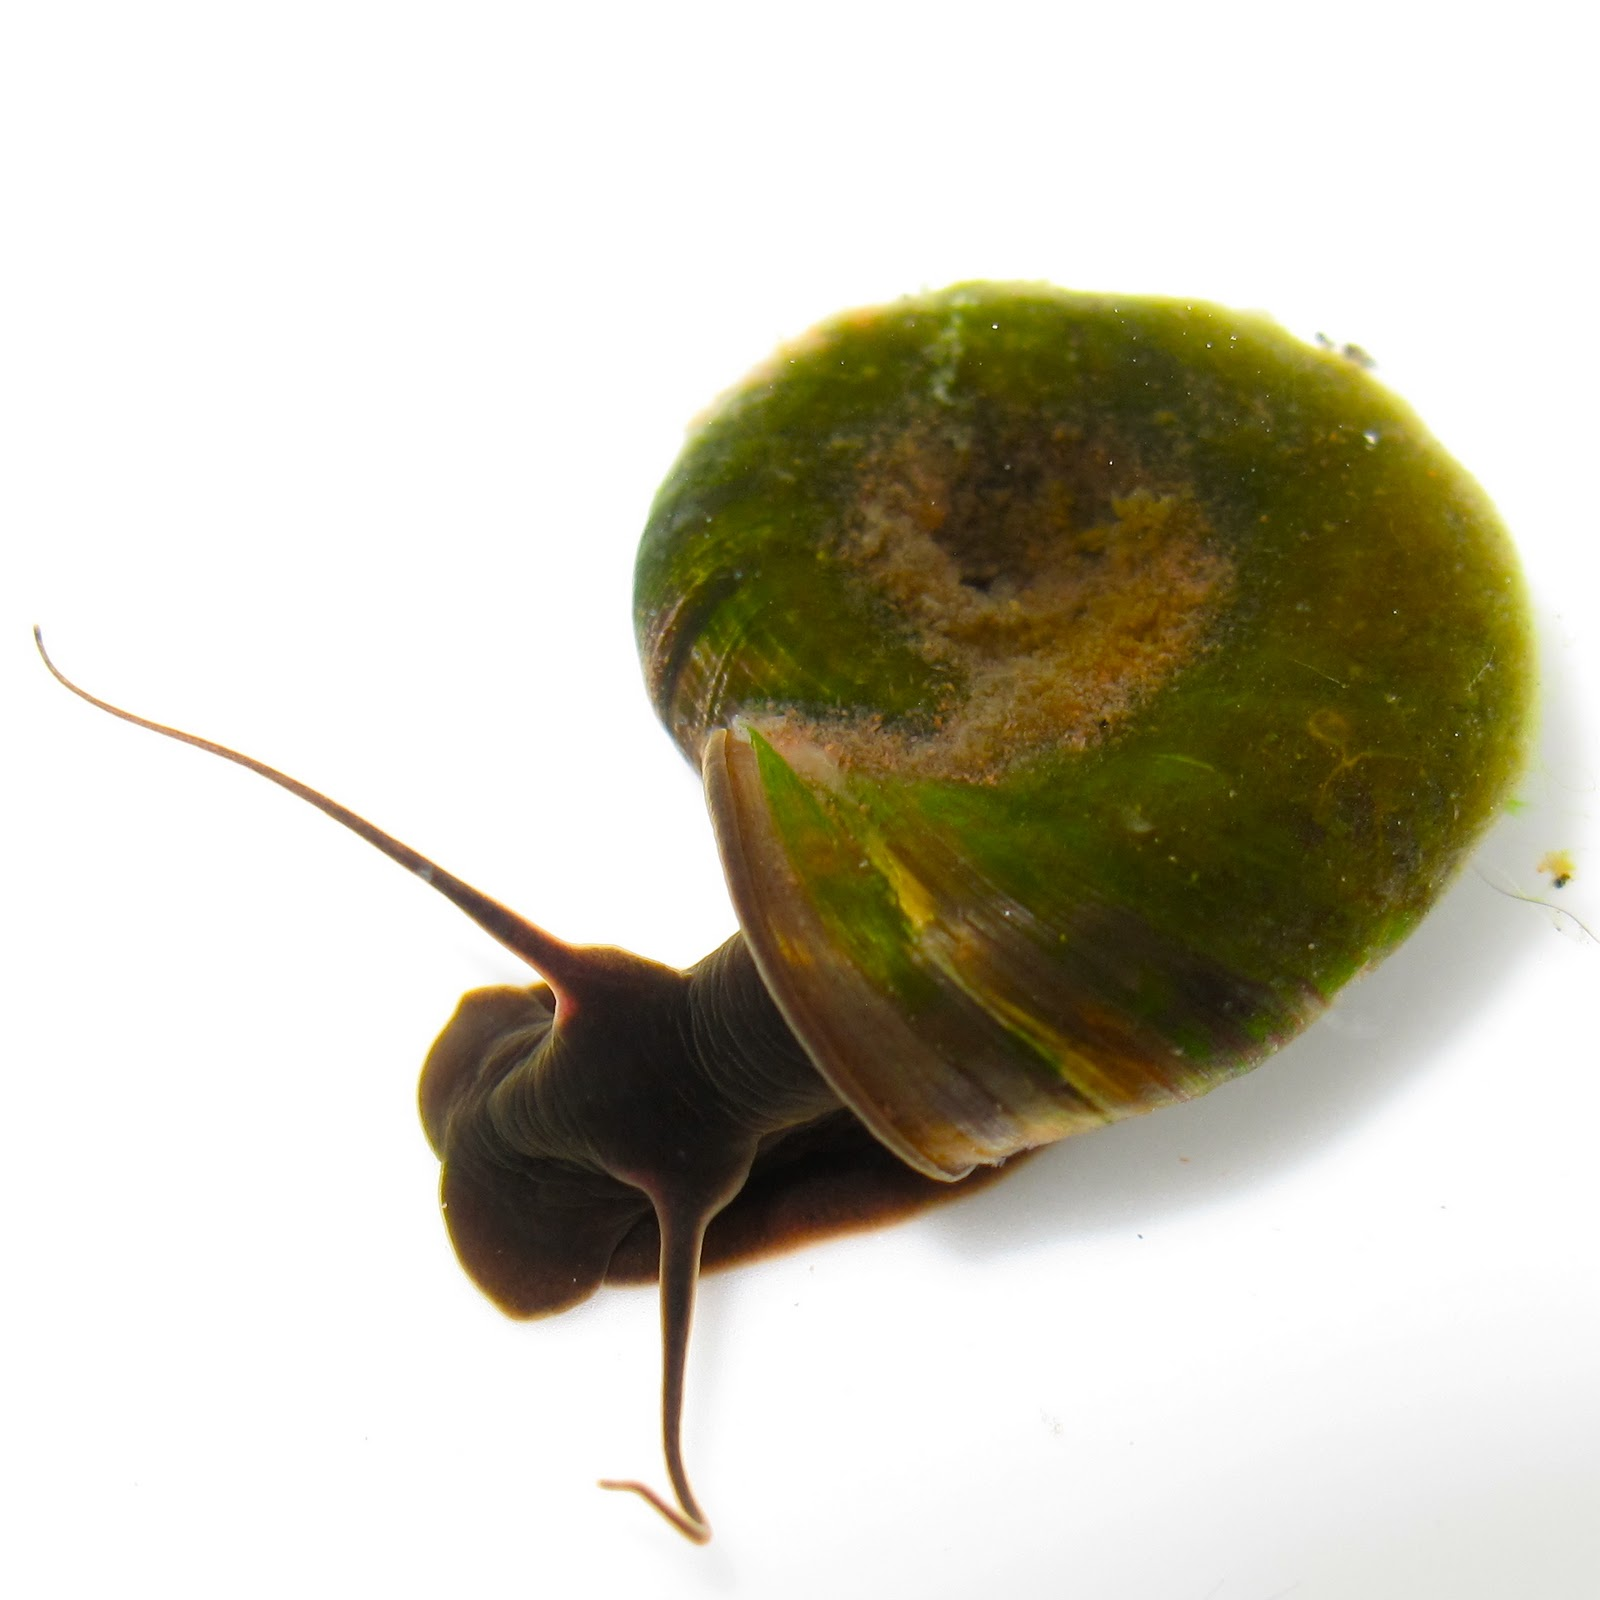 BugBlog: The Great Ramshorn Snail